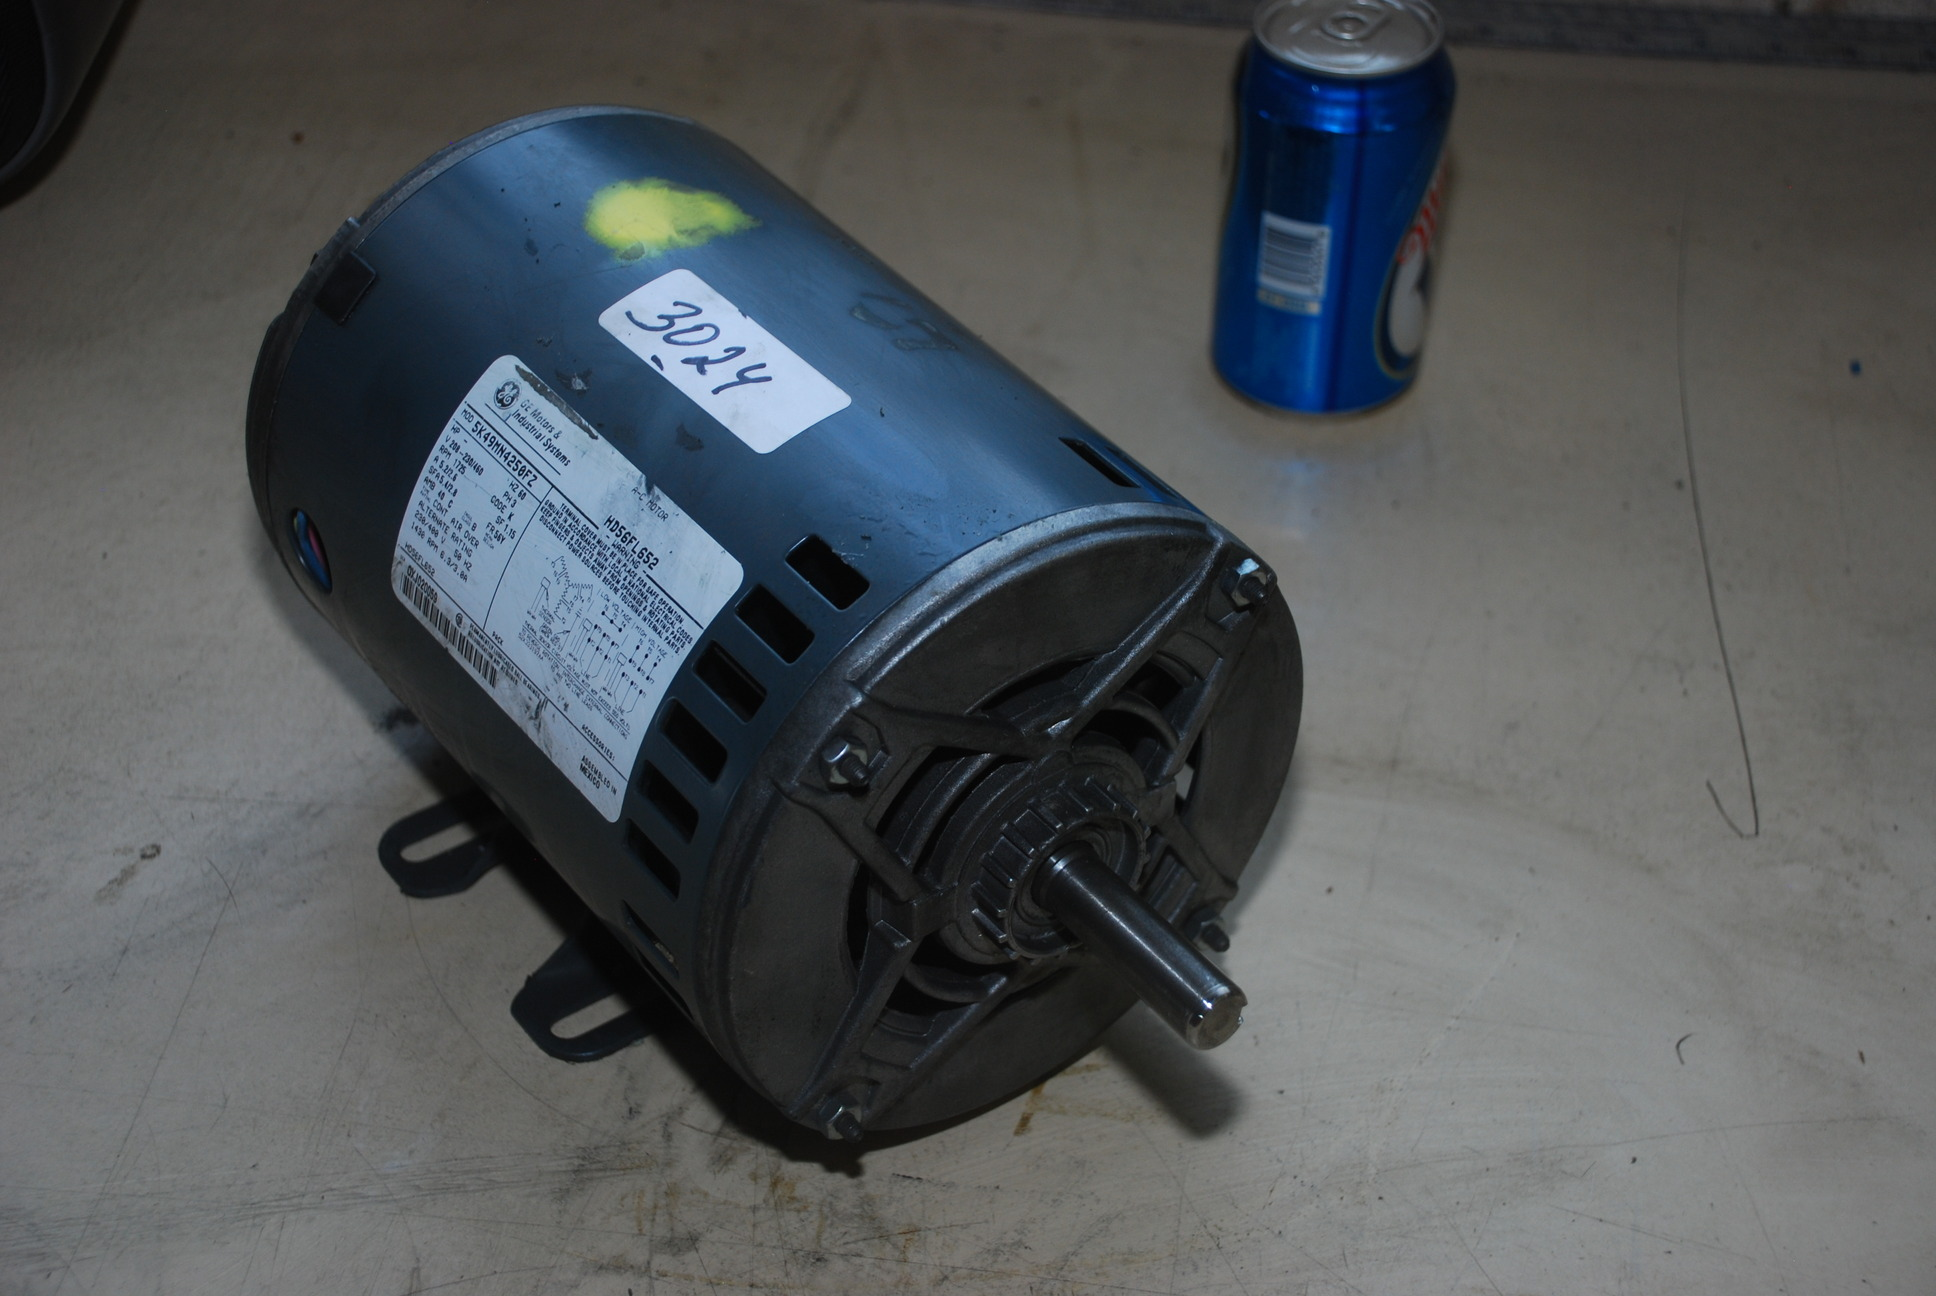 New ge 1 5 2hp hvac fan blower motor model 5k49mn4250fz for Ge furnace blower motor